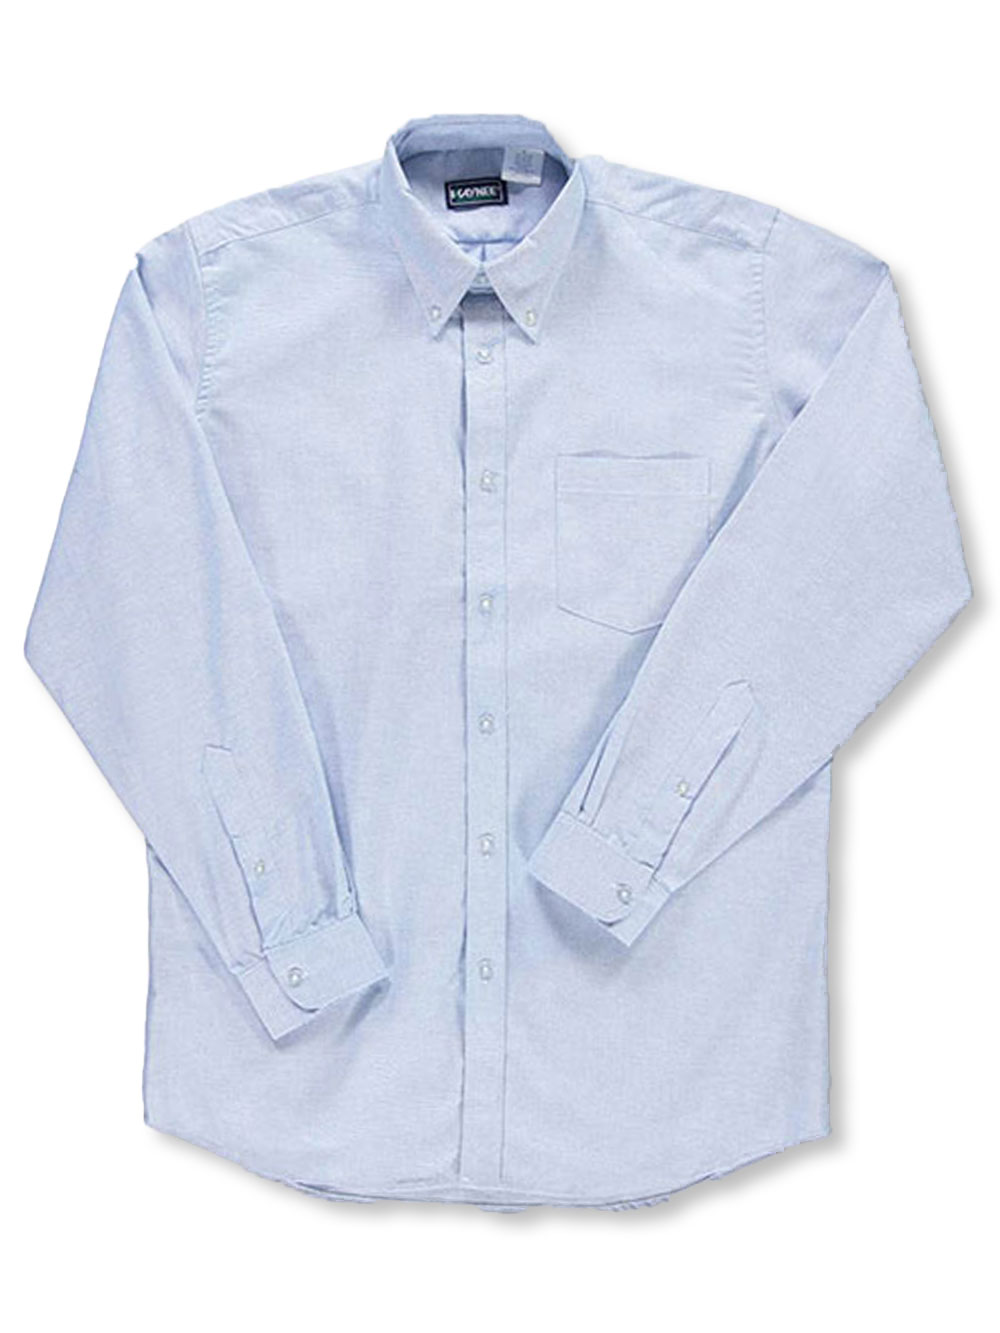 Size Xl Button-Downs for Boys